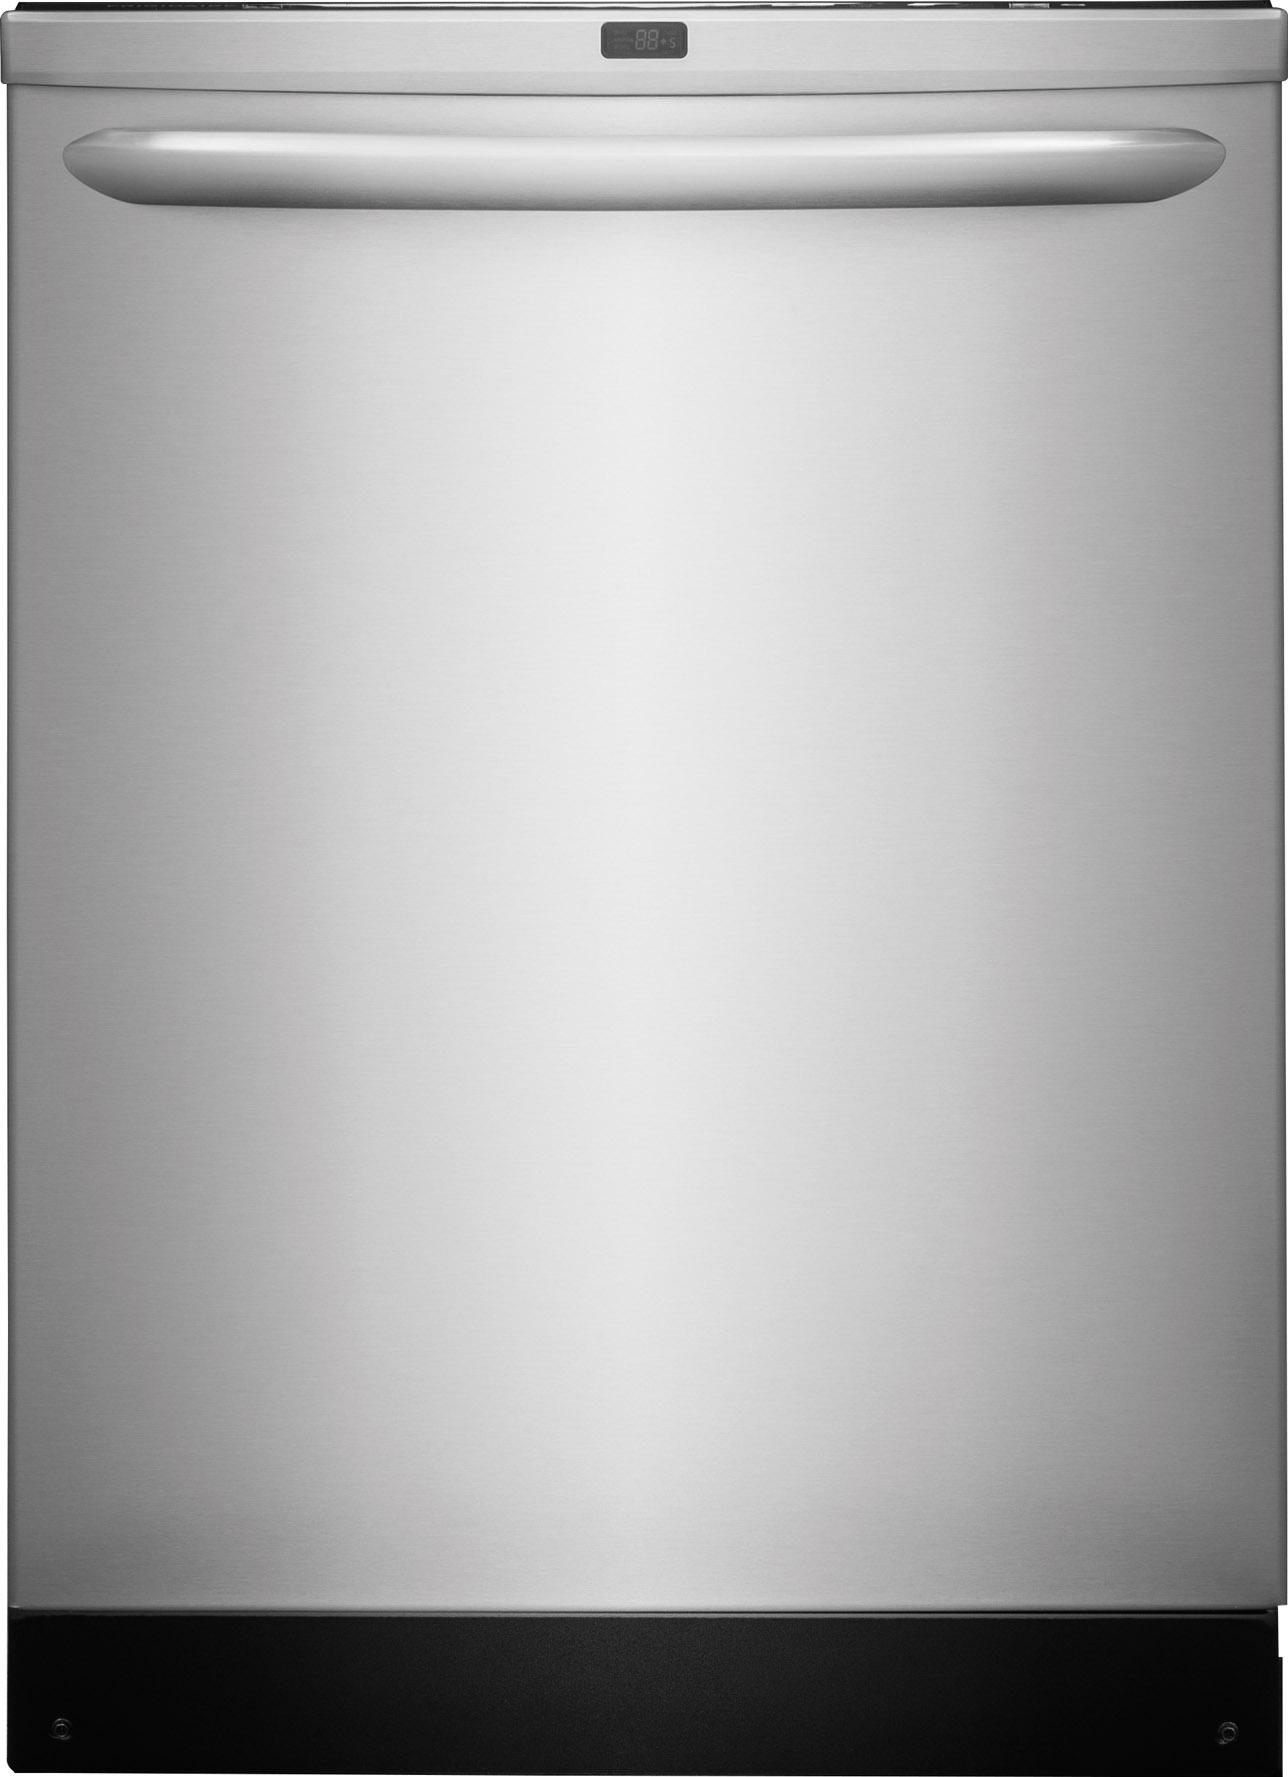 "Frigidaire Dishwashers 24"" Built-In Dishwasher - Item Number: FFID2421QS"